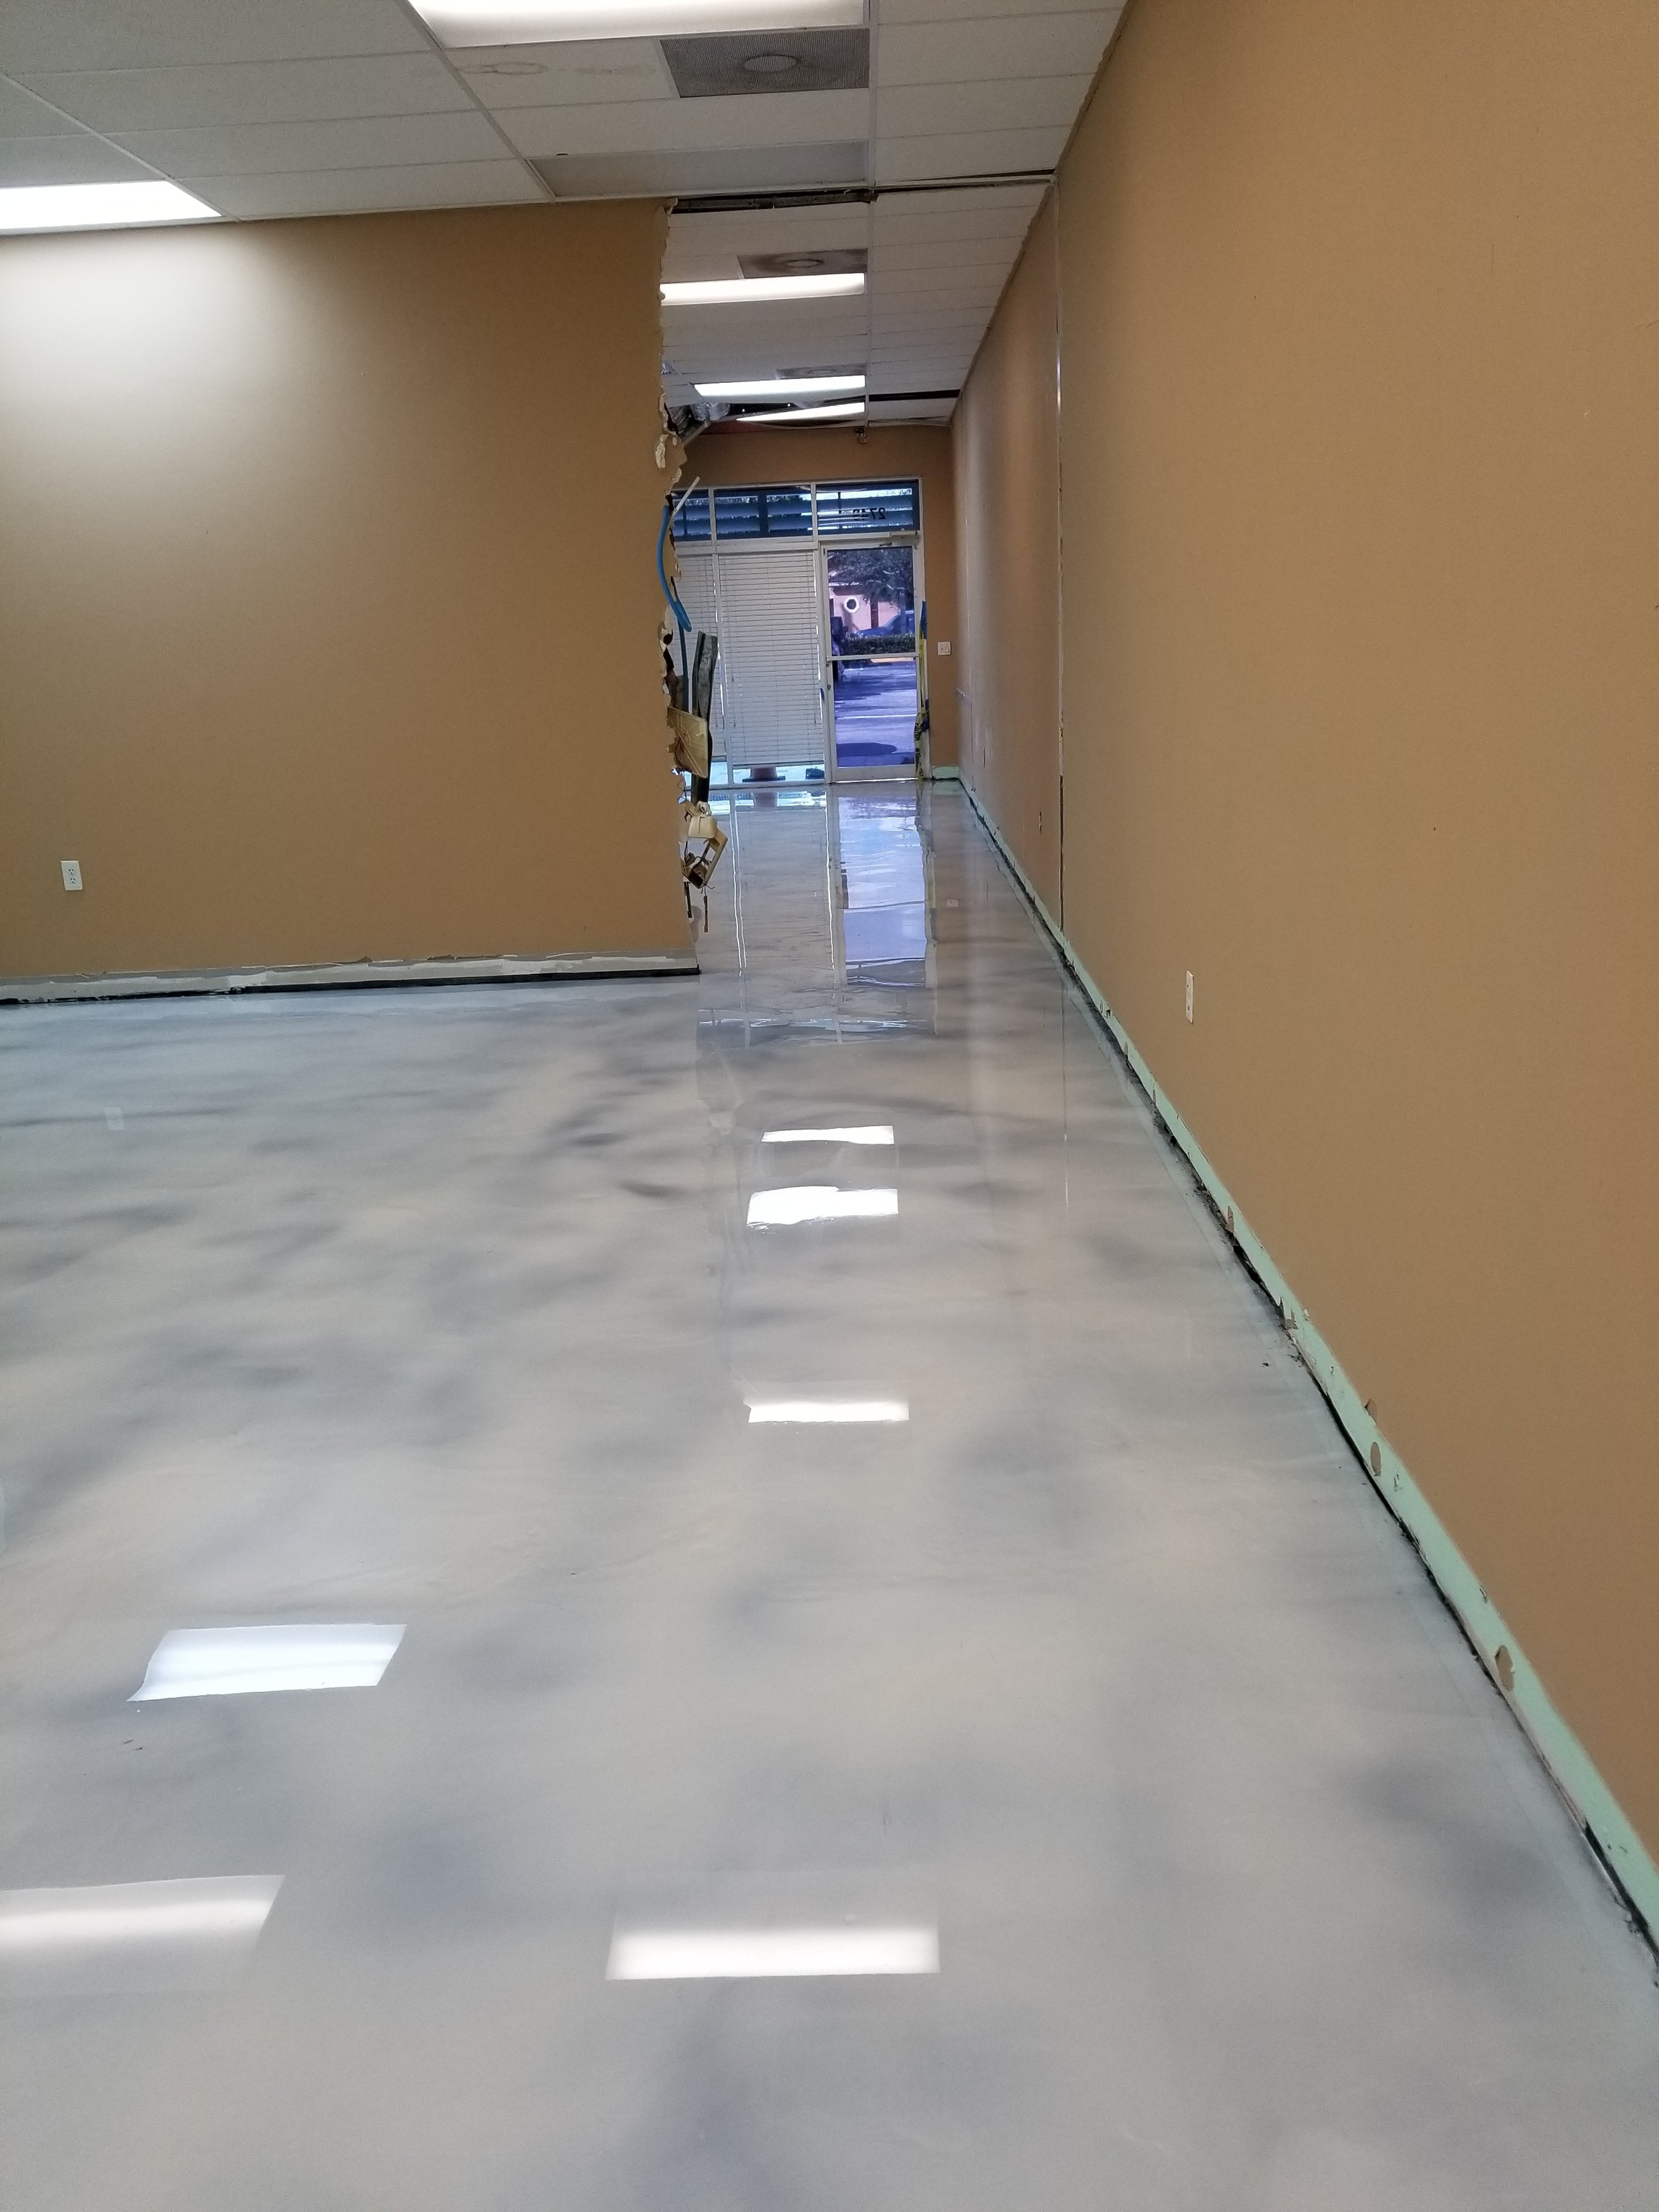 AFTER - Gleaming new concrete finishes to be proud of